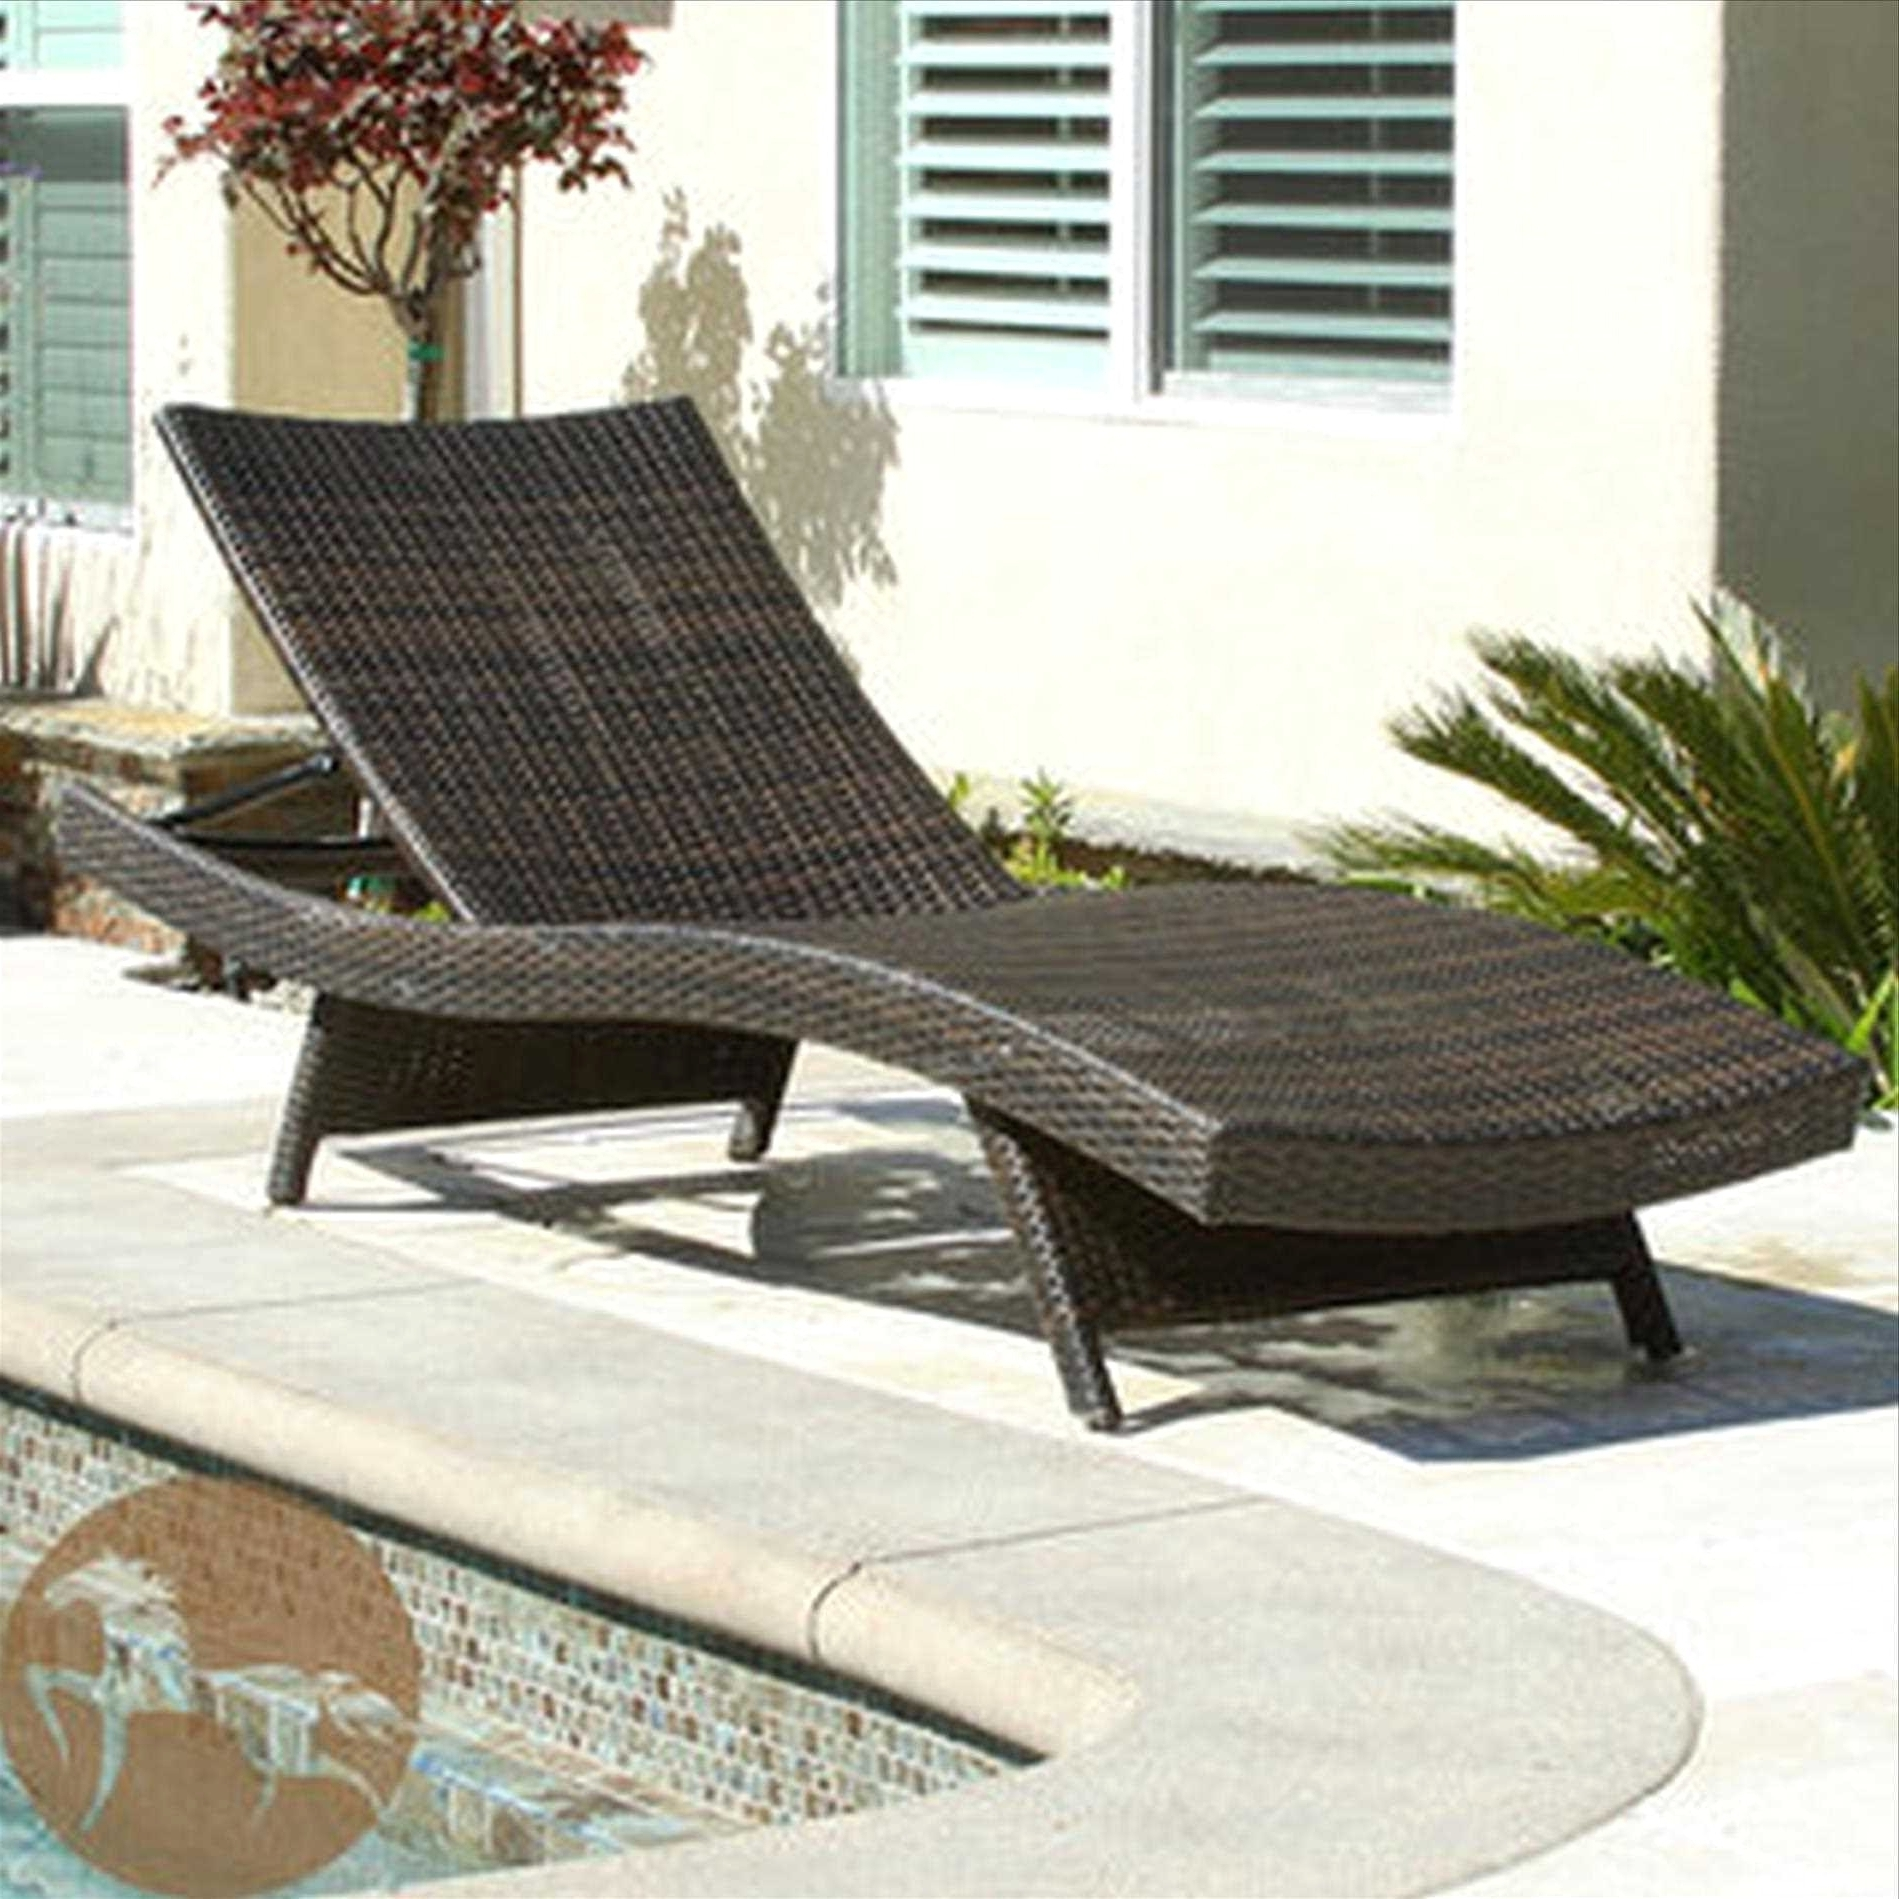 Sears Chaise Lounge Chairs Patio Furniture • Lounge Chairs Ideas Intended For Best And Newest Chaise Lounge Chairs At Sears (View 10 of 15)